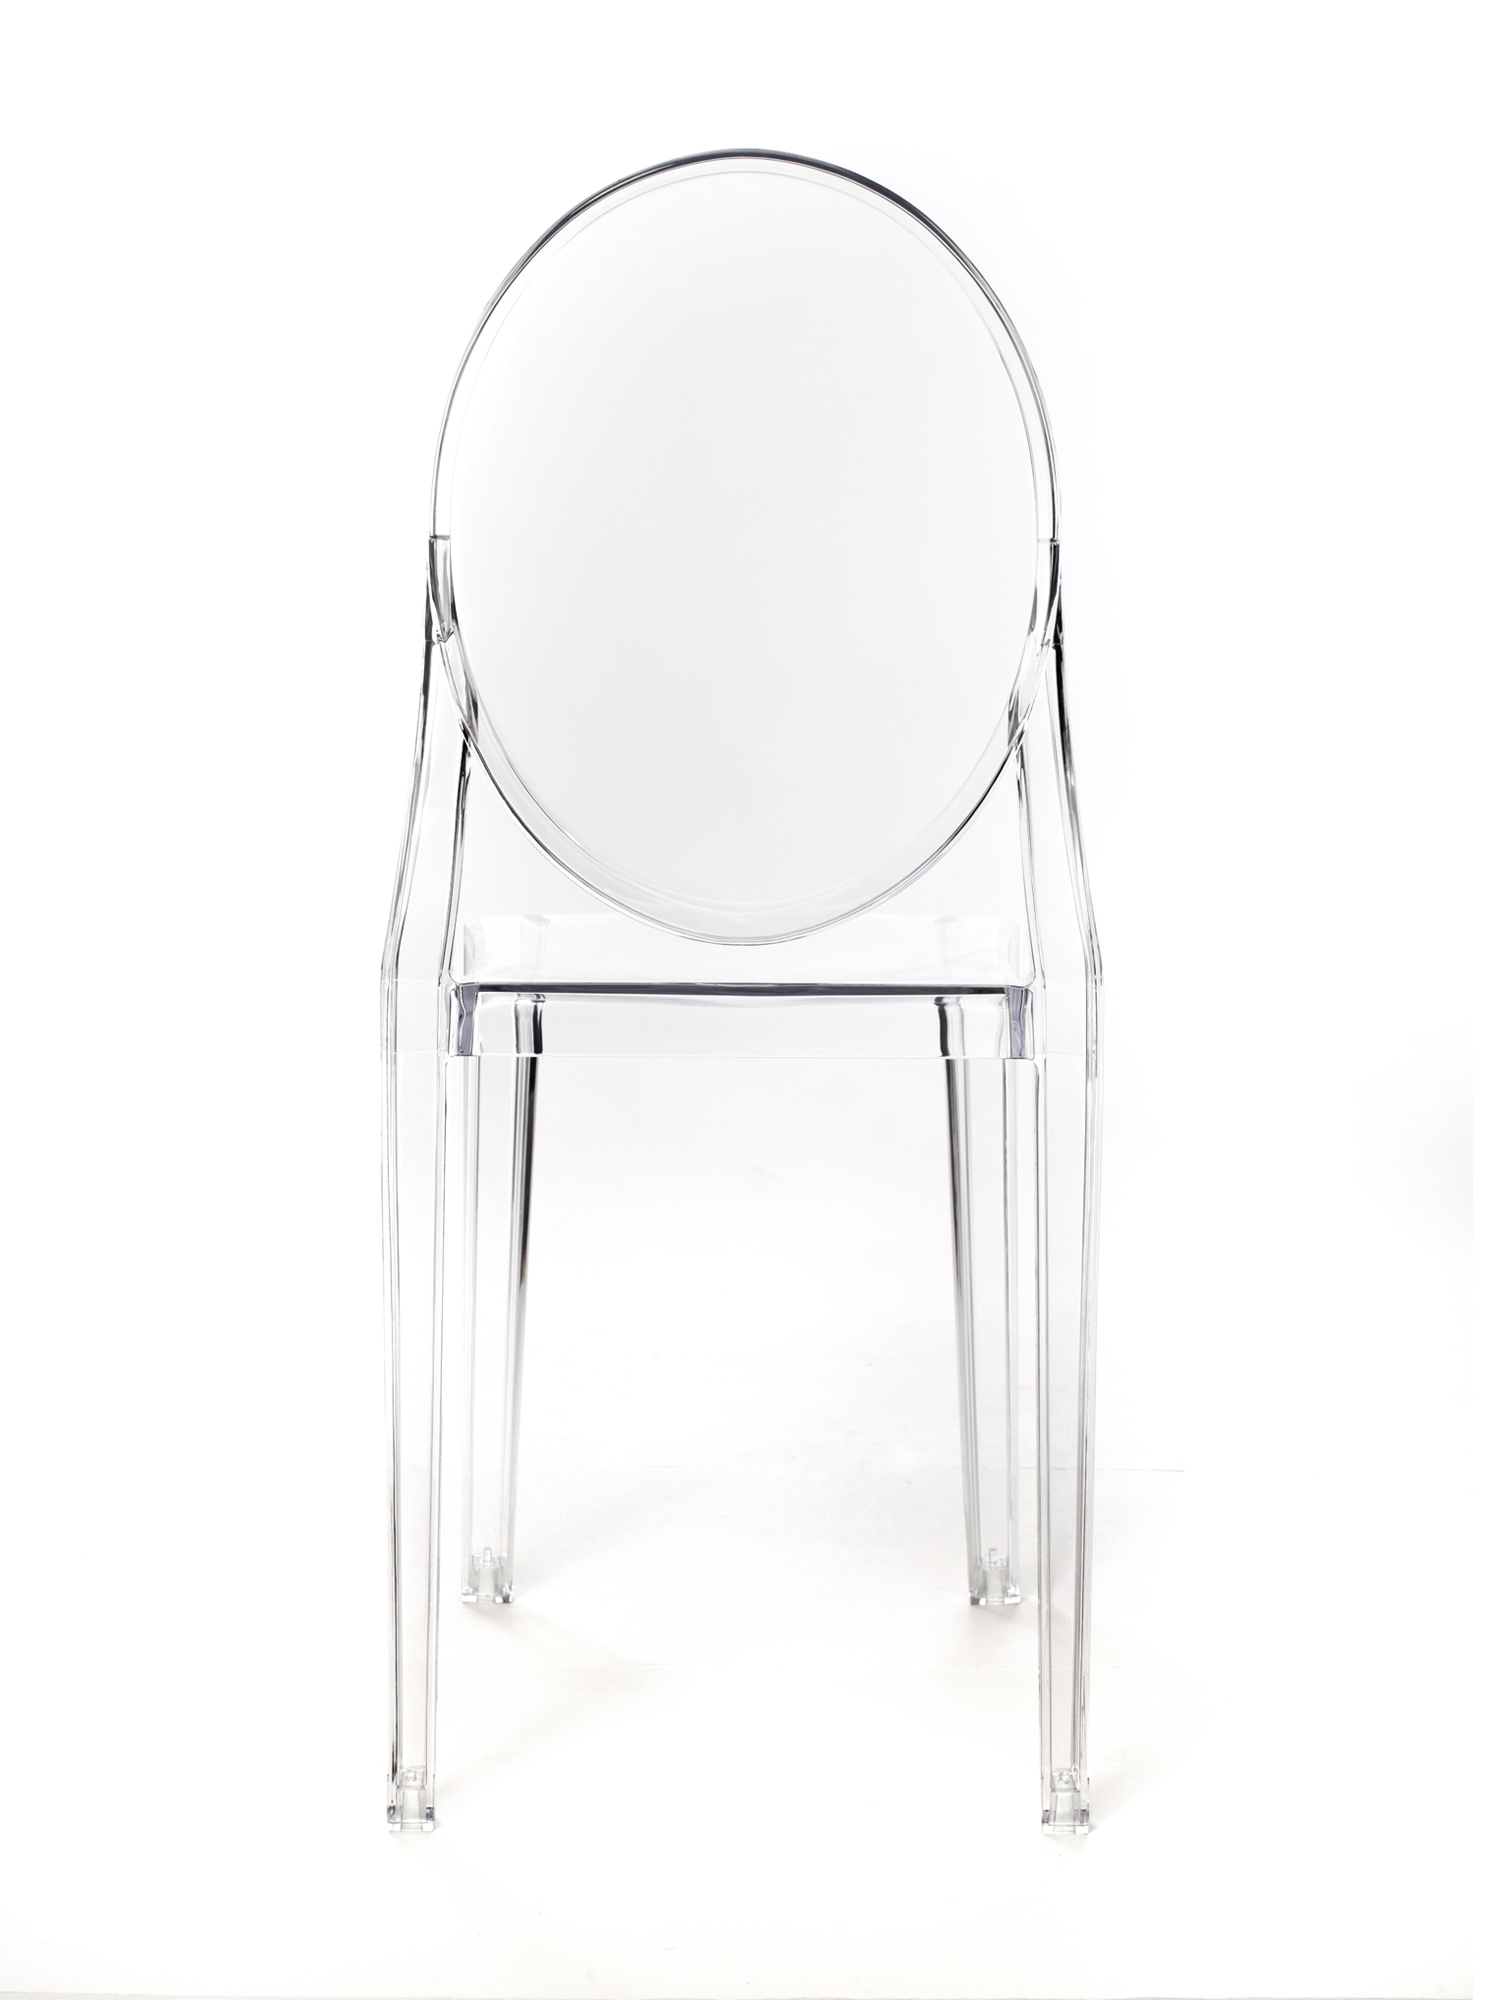 Polycarbonate Ghost Chair without Arm – CSP